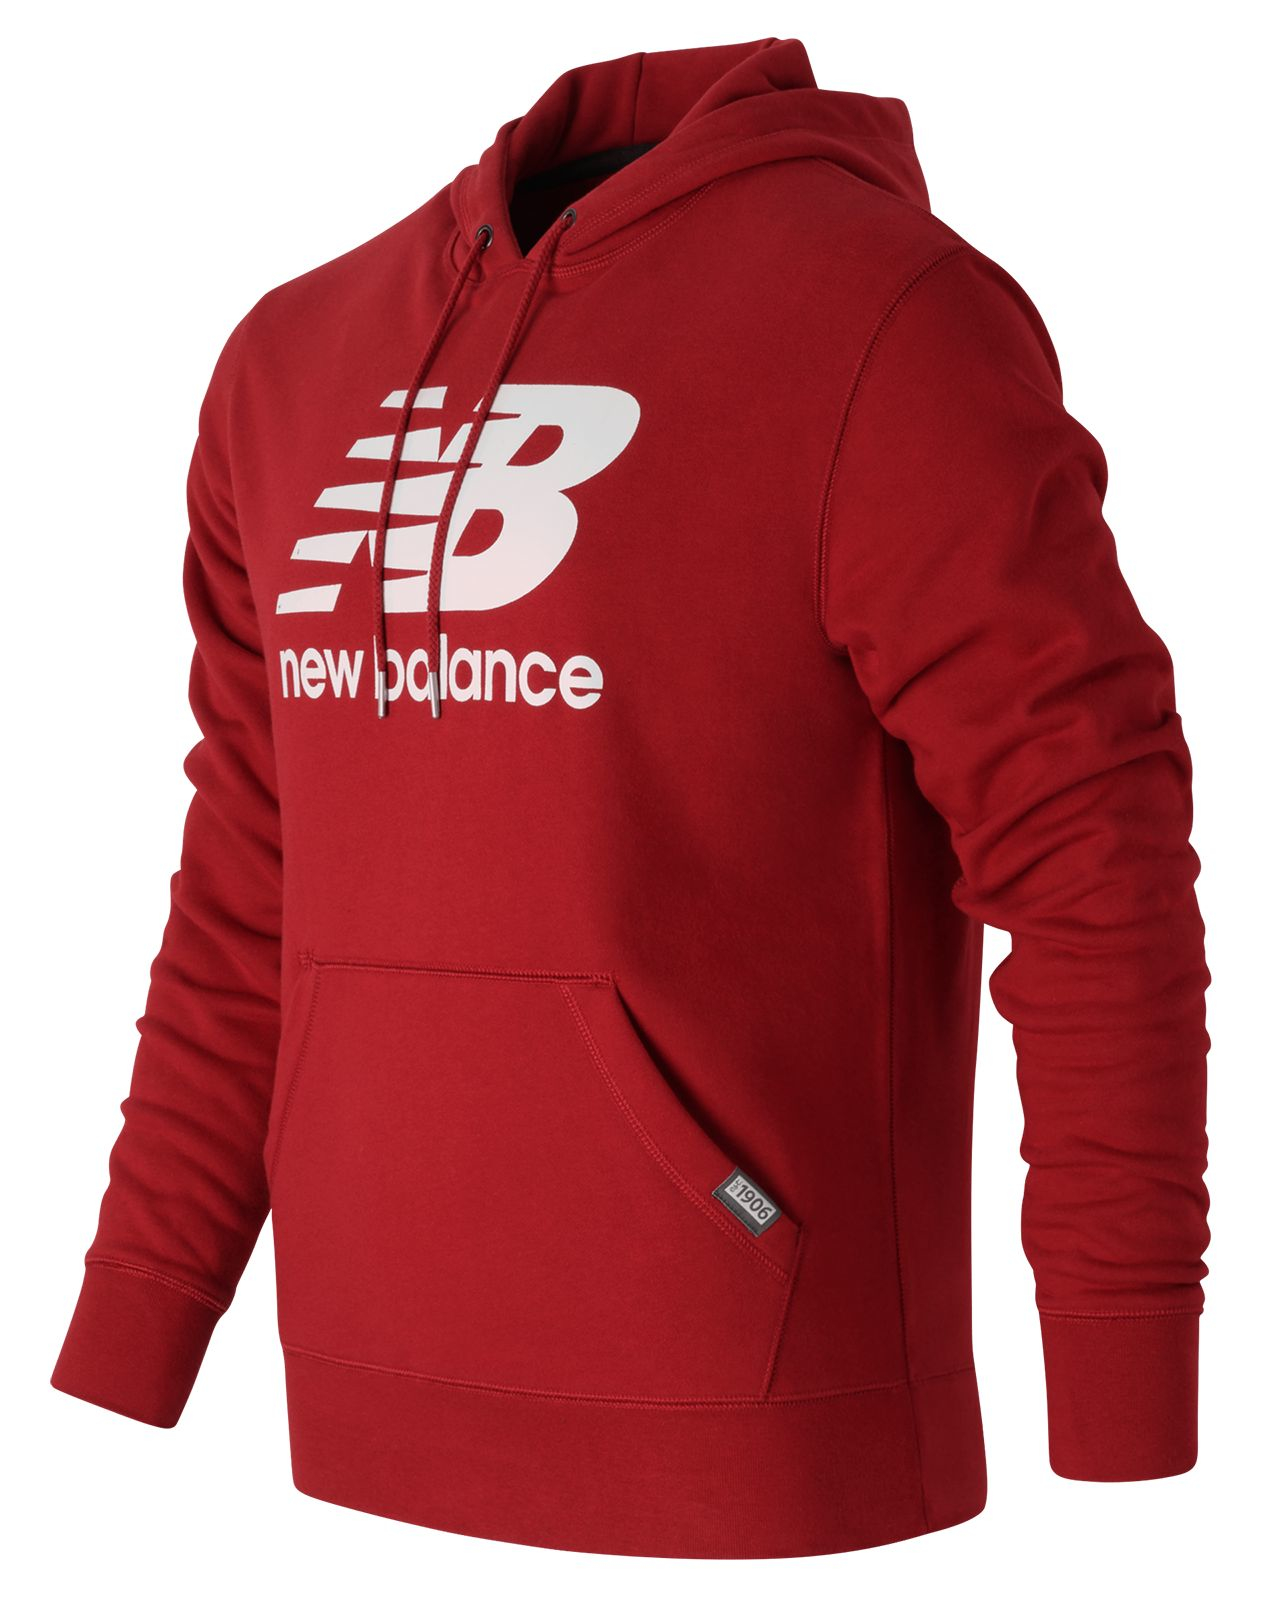 new balance classic pullover hoodie in red for men lyst. Black Bedroom Furniture Sets. Home Design Ideas